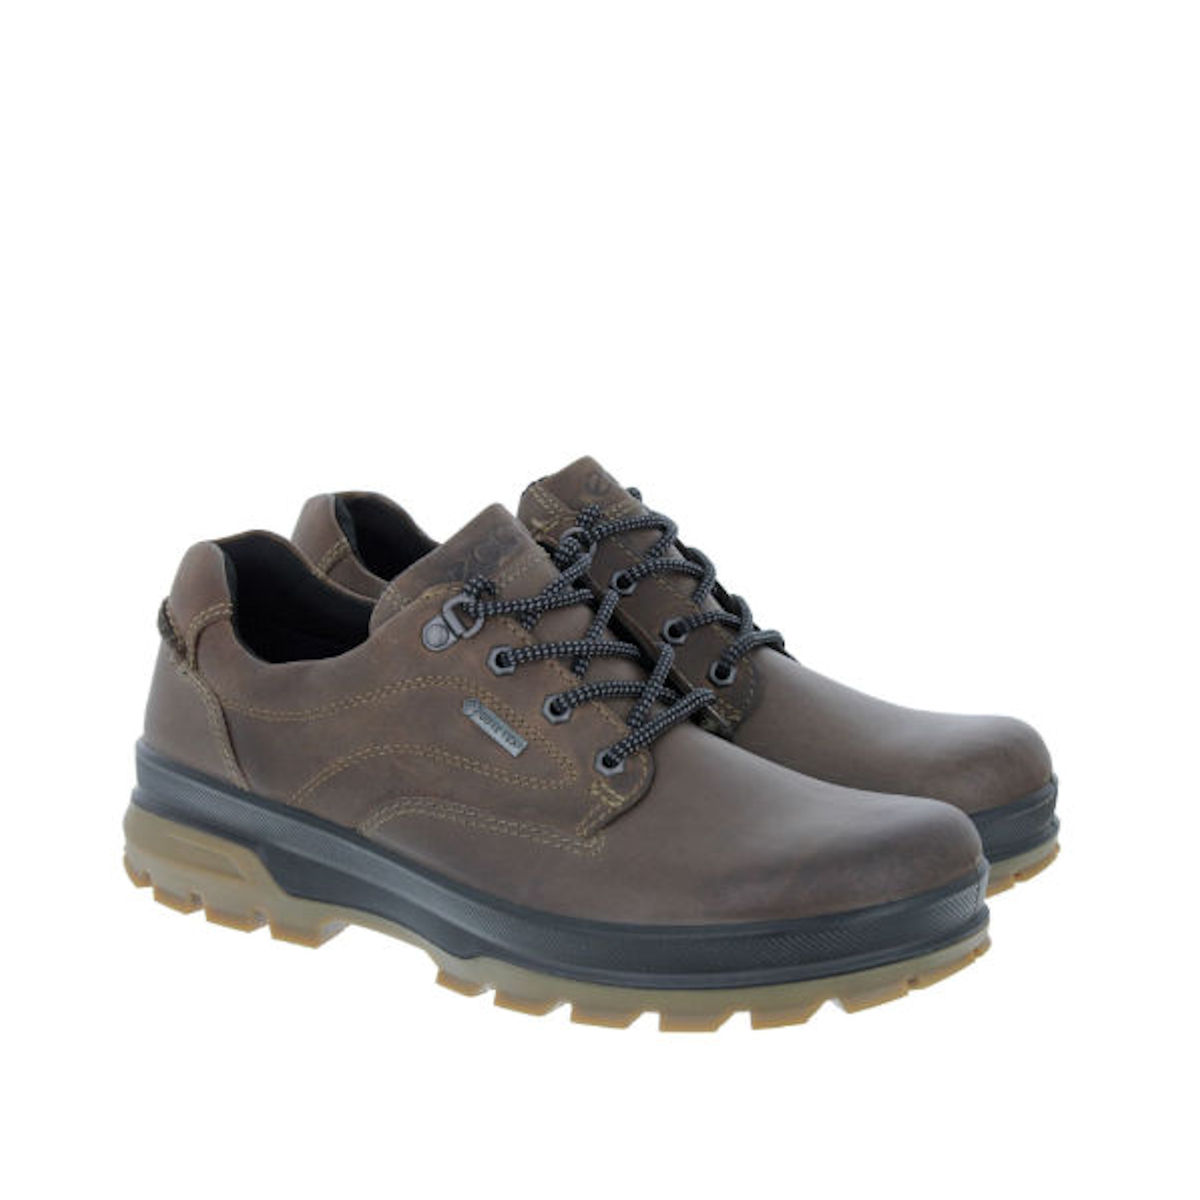 Ecco 838034 Rugged Track Gore-Tex Walking Shoes